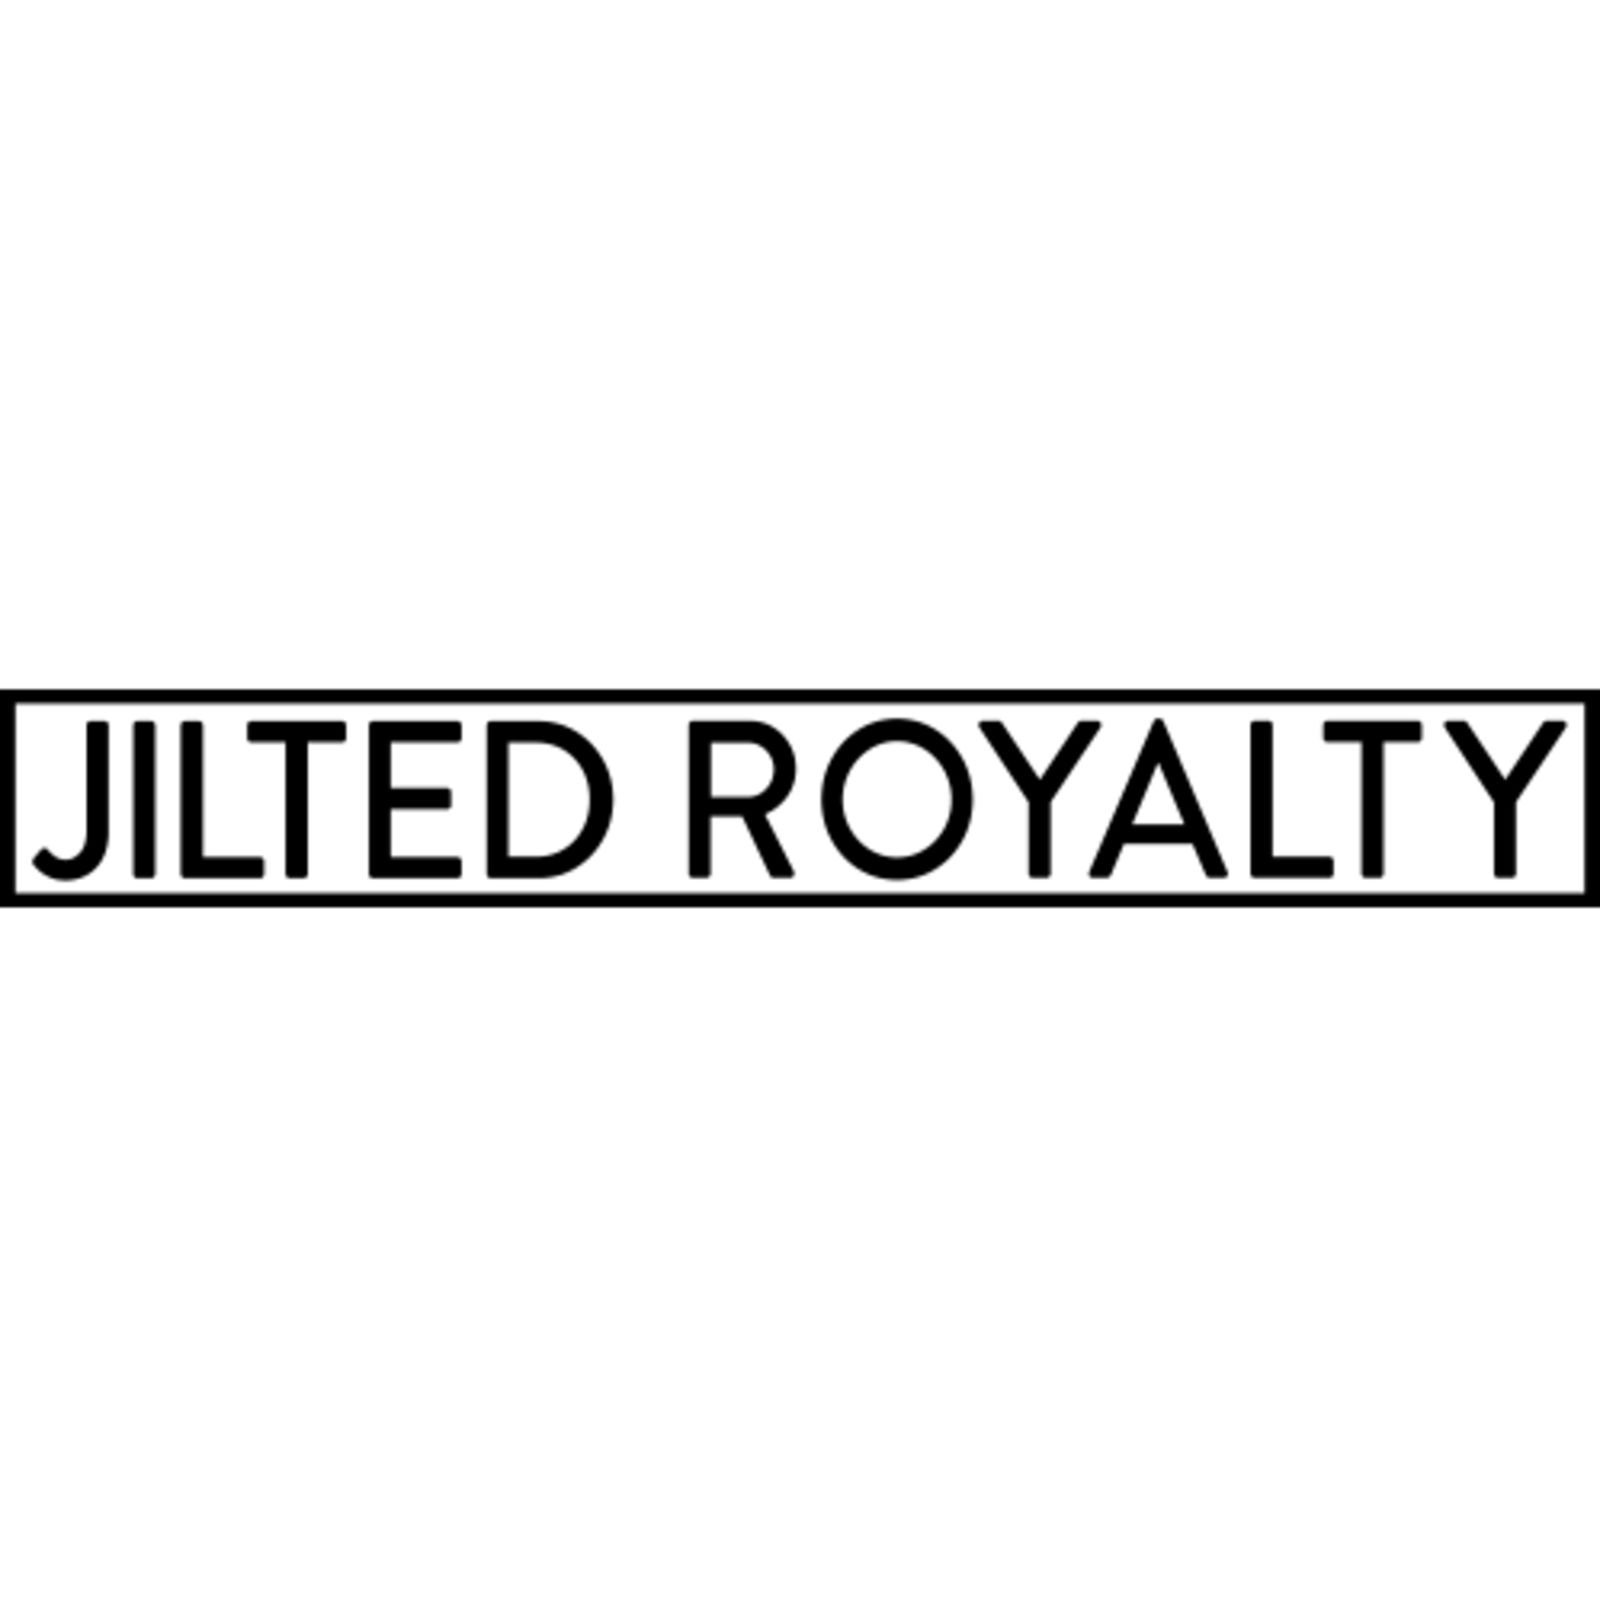 JILTED ROYALTY